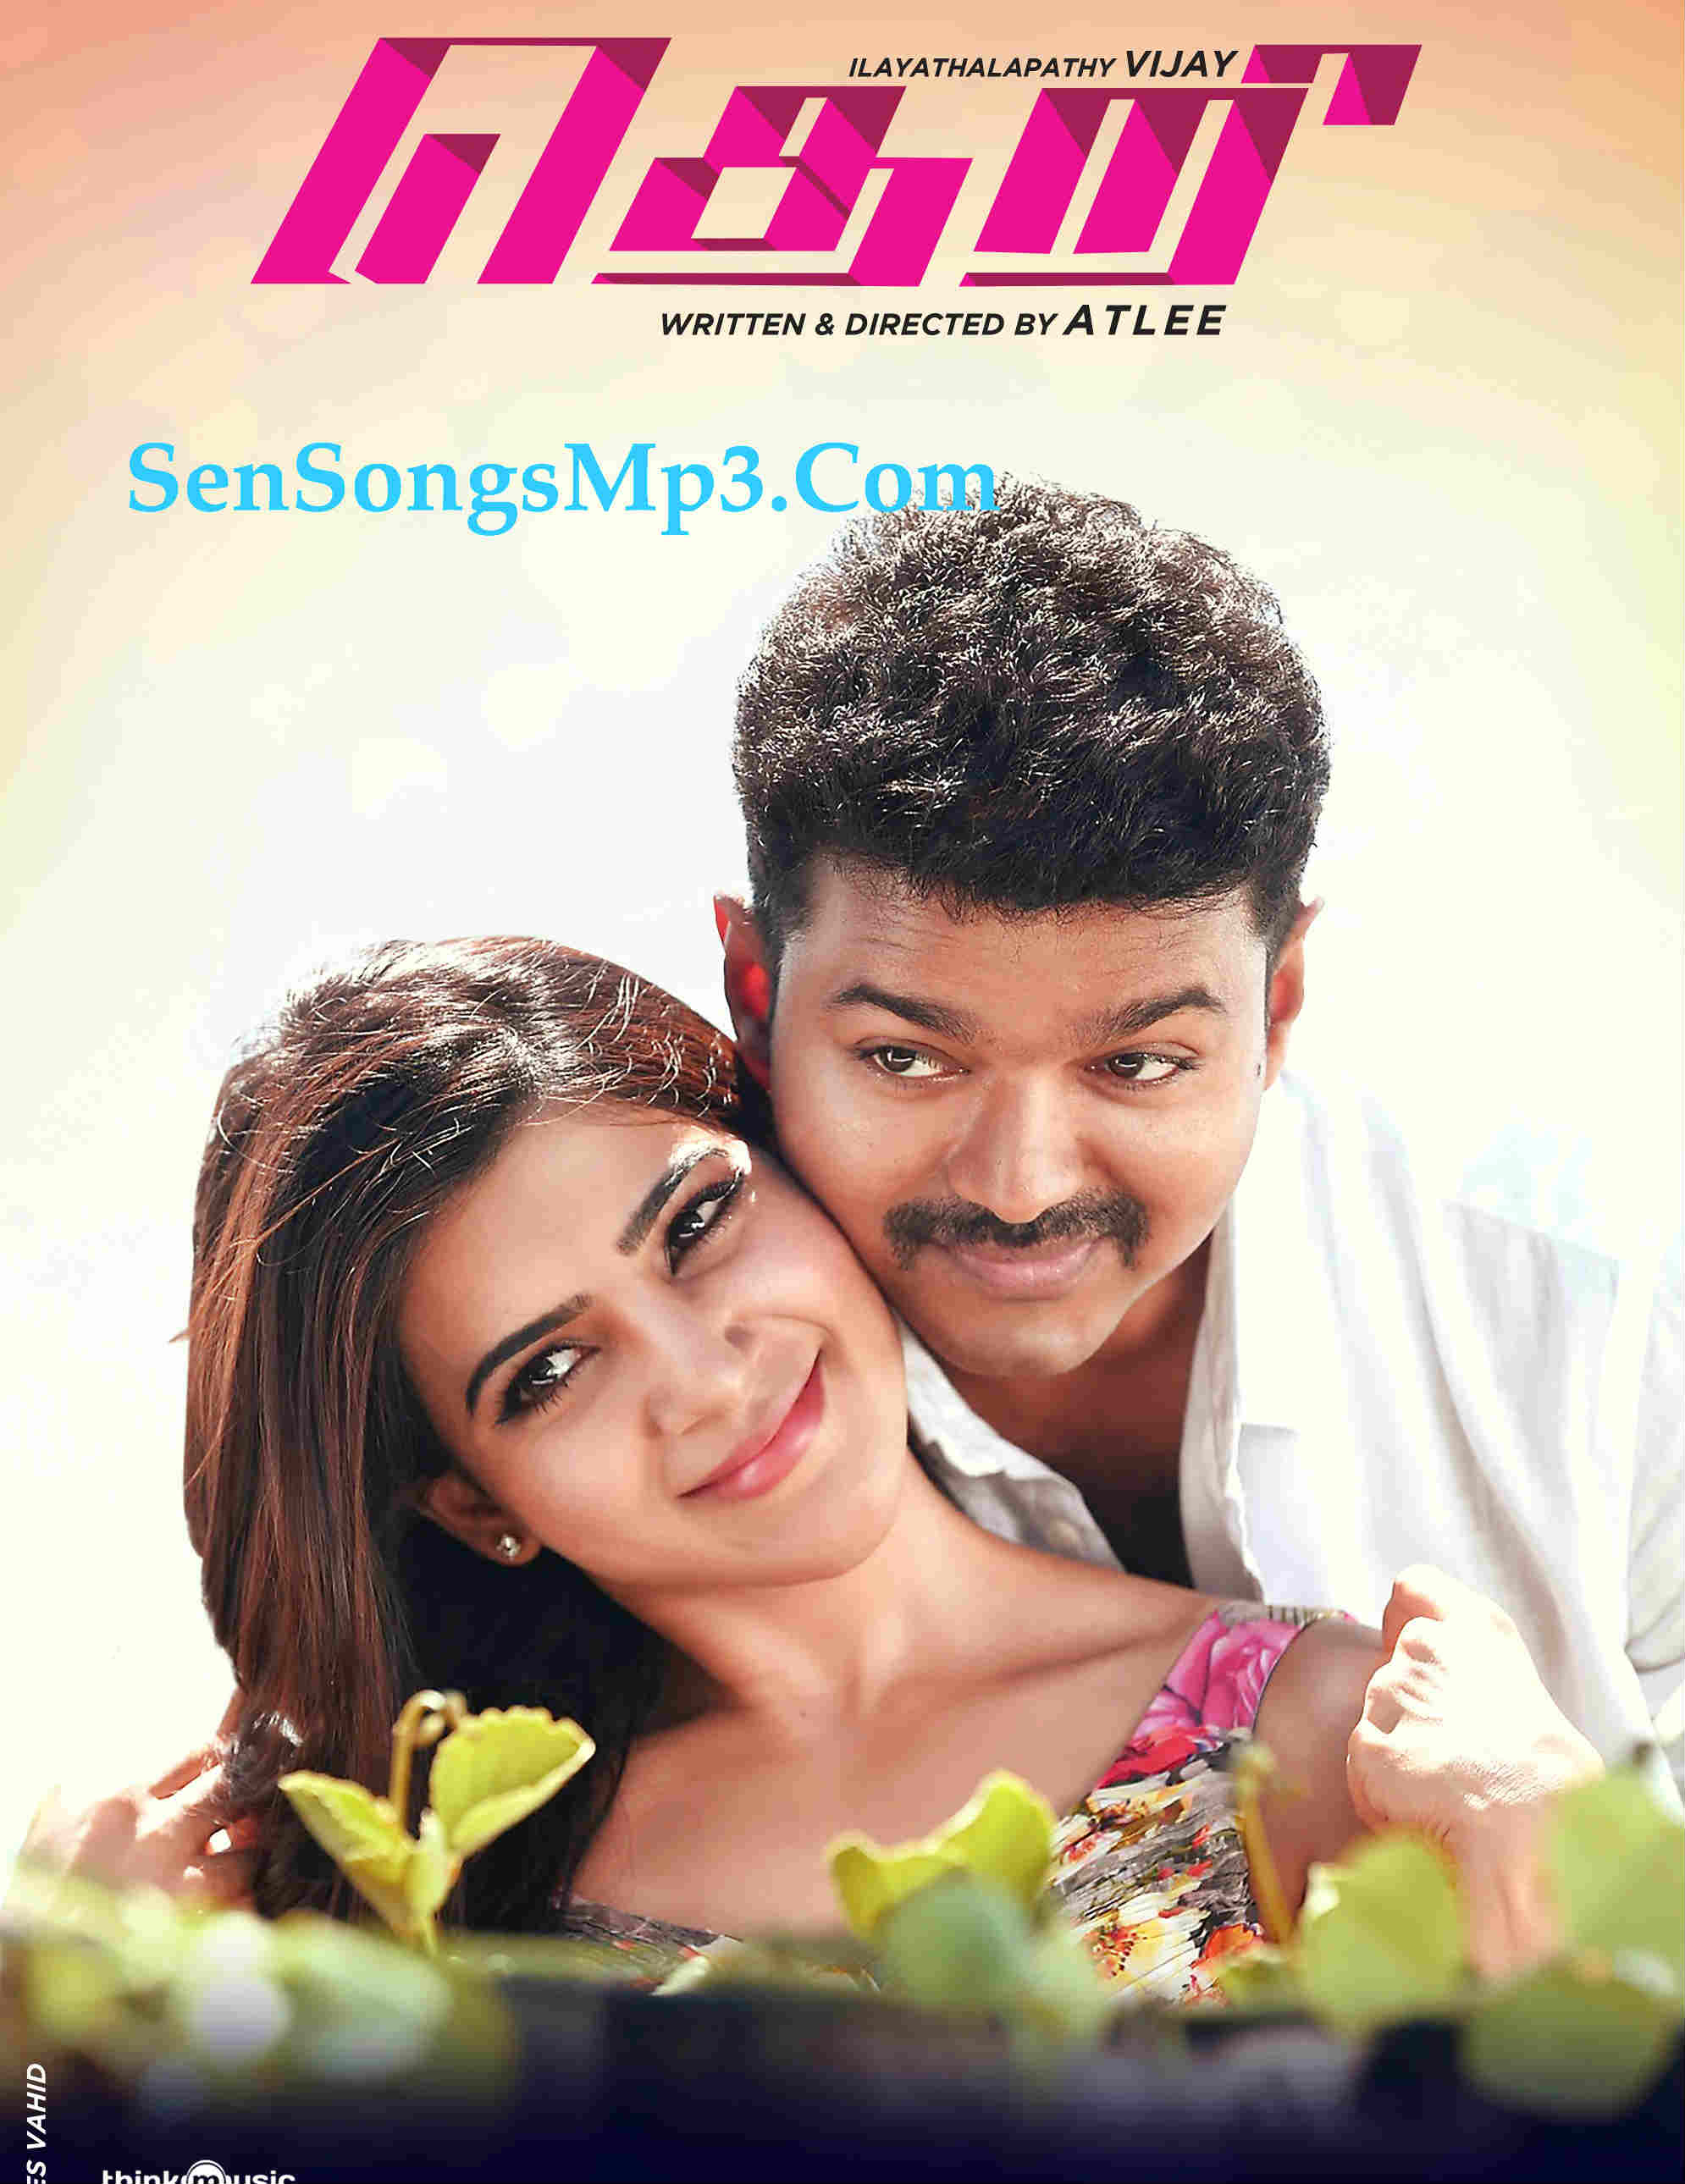 Theri (2016) Tamil Mp3 Songs Free Download-StarmusiqTheri Mp3